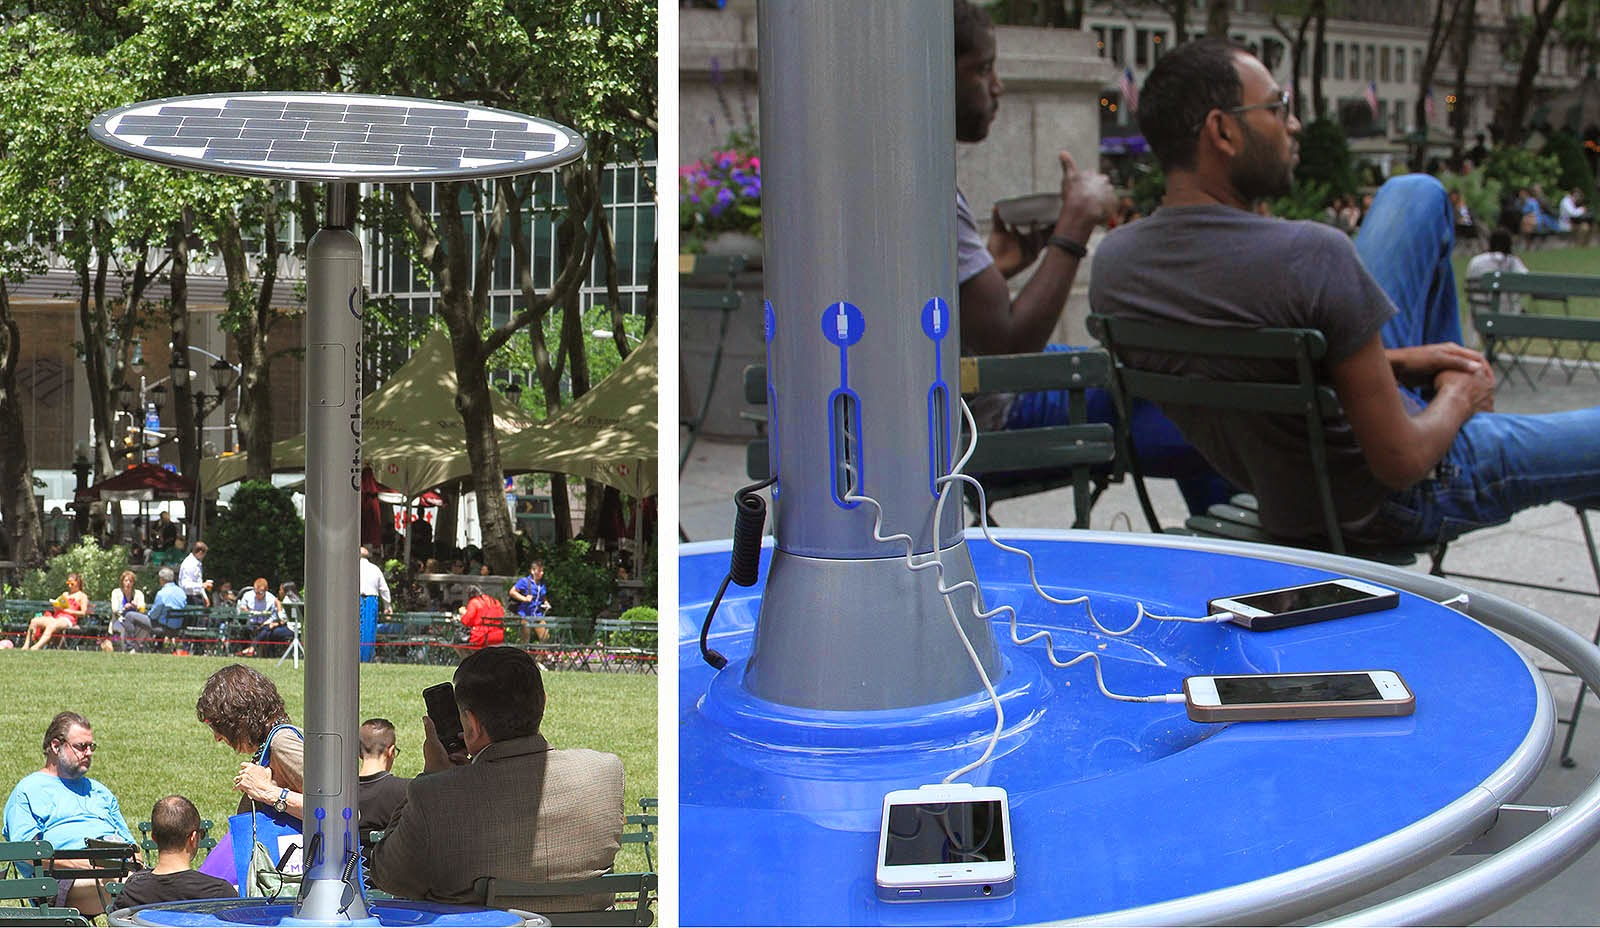 Bryant Park Blog: Solar-Powered Charging Stations Land in Bryant Park